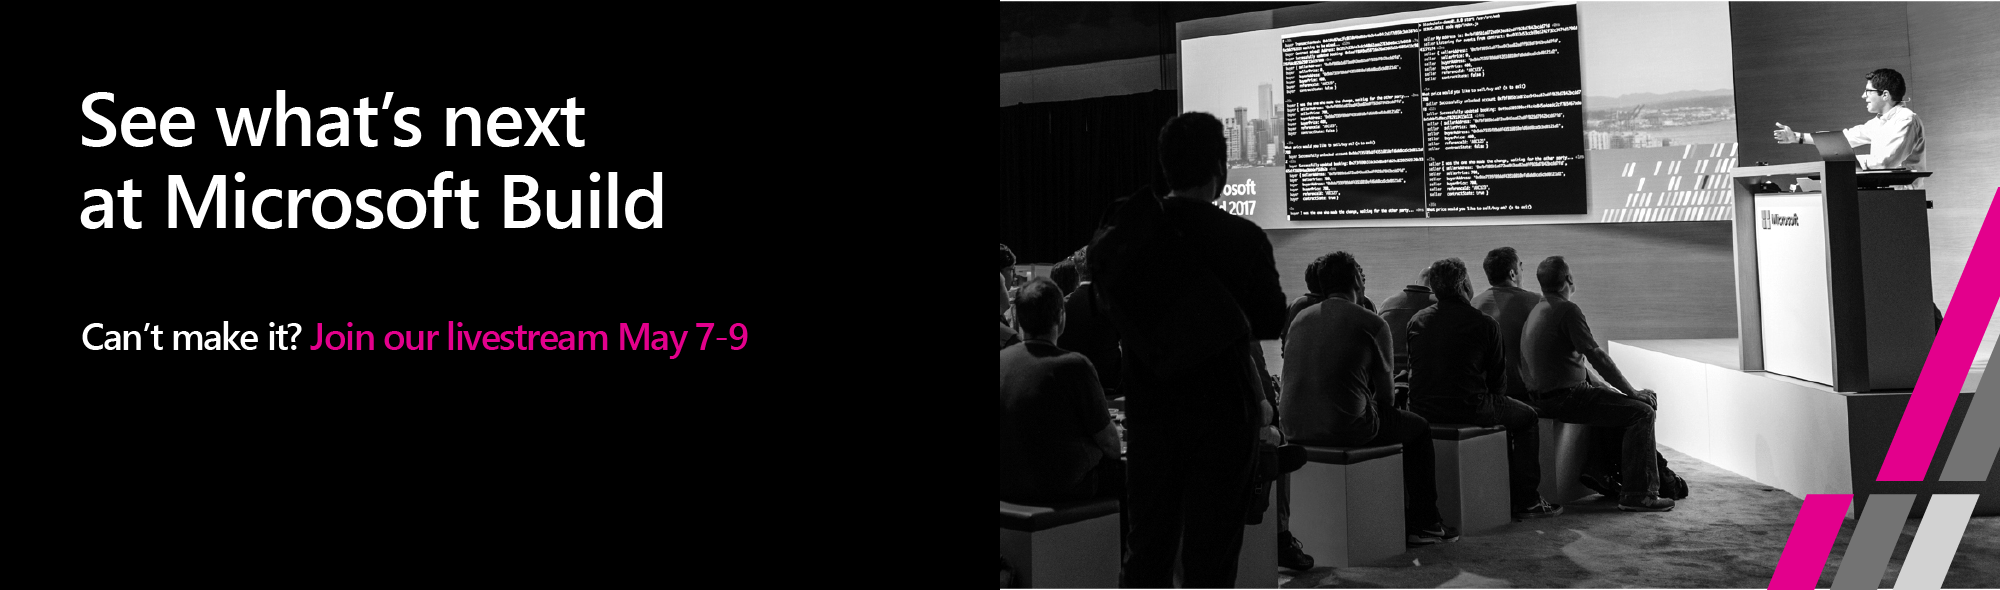 Join Microsoft Build Live for the ultimate digital experience